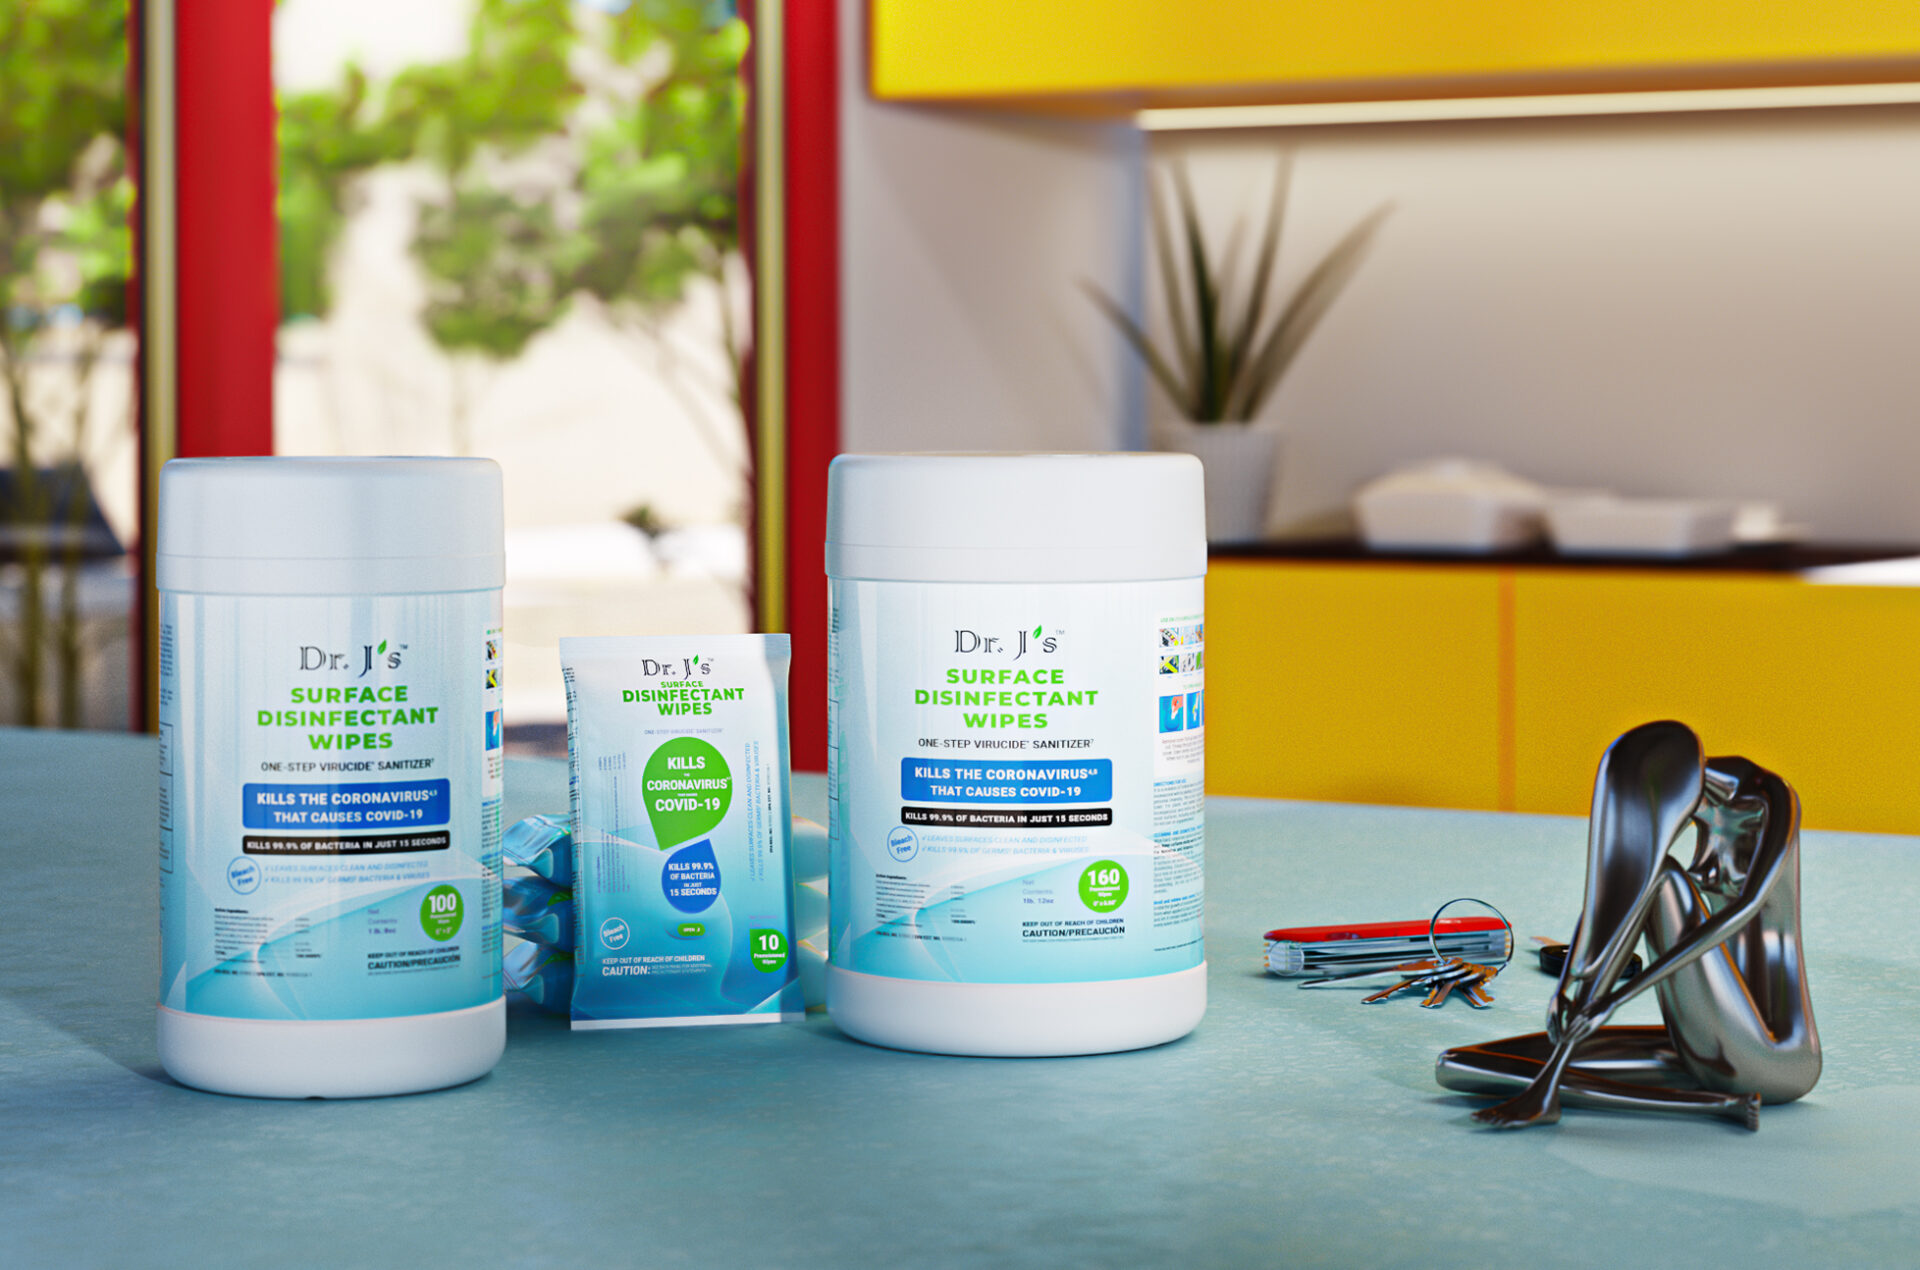 DrJs Disinfectant Wipes